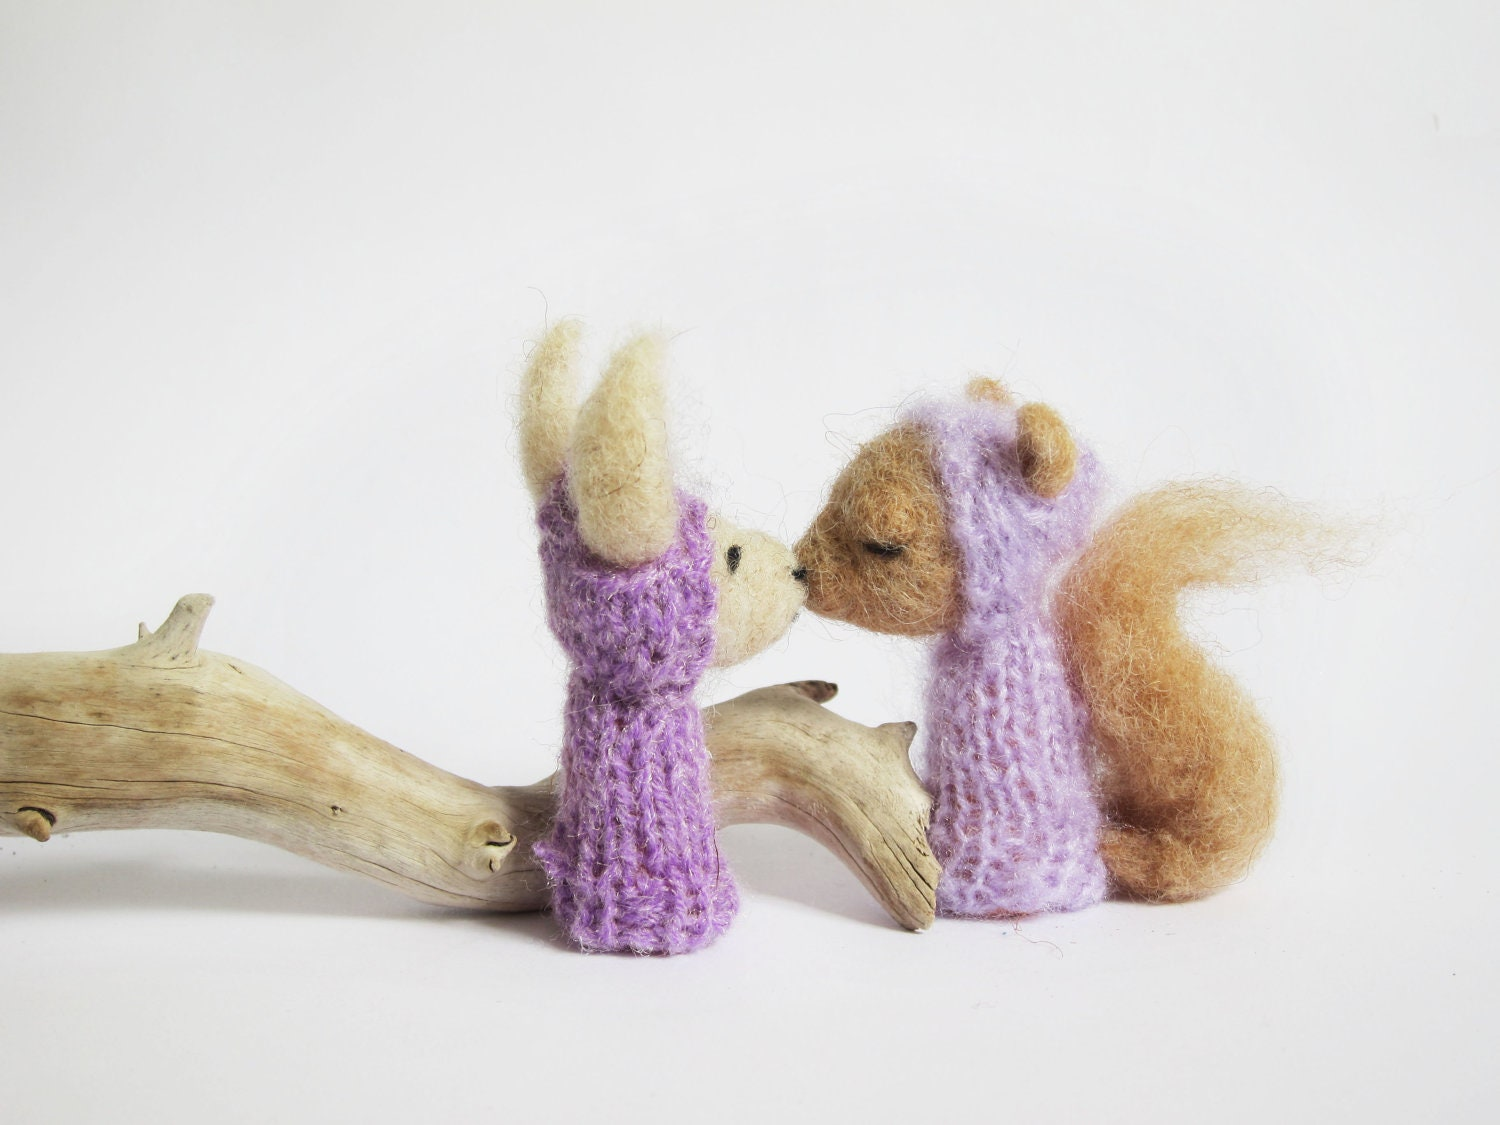 FINGER PUPPET BOX Needle Felted Lilac Squirrel and Bunny in a Vintage Shadow Box, Children, Eco Friendly Toy, Wall Hanging Nursery Art - LazyAnimals